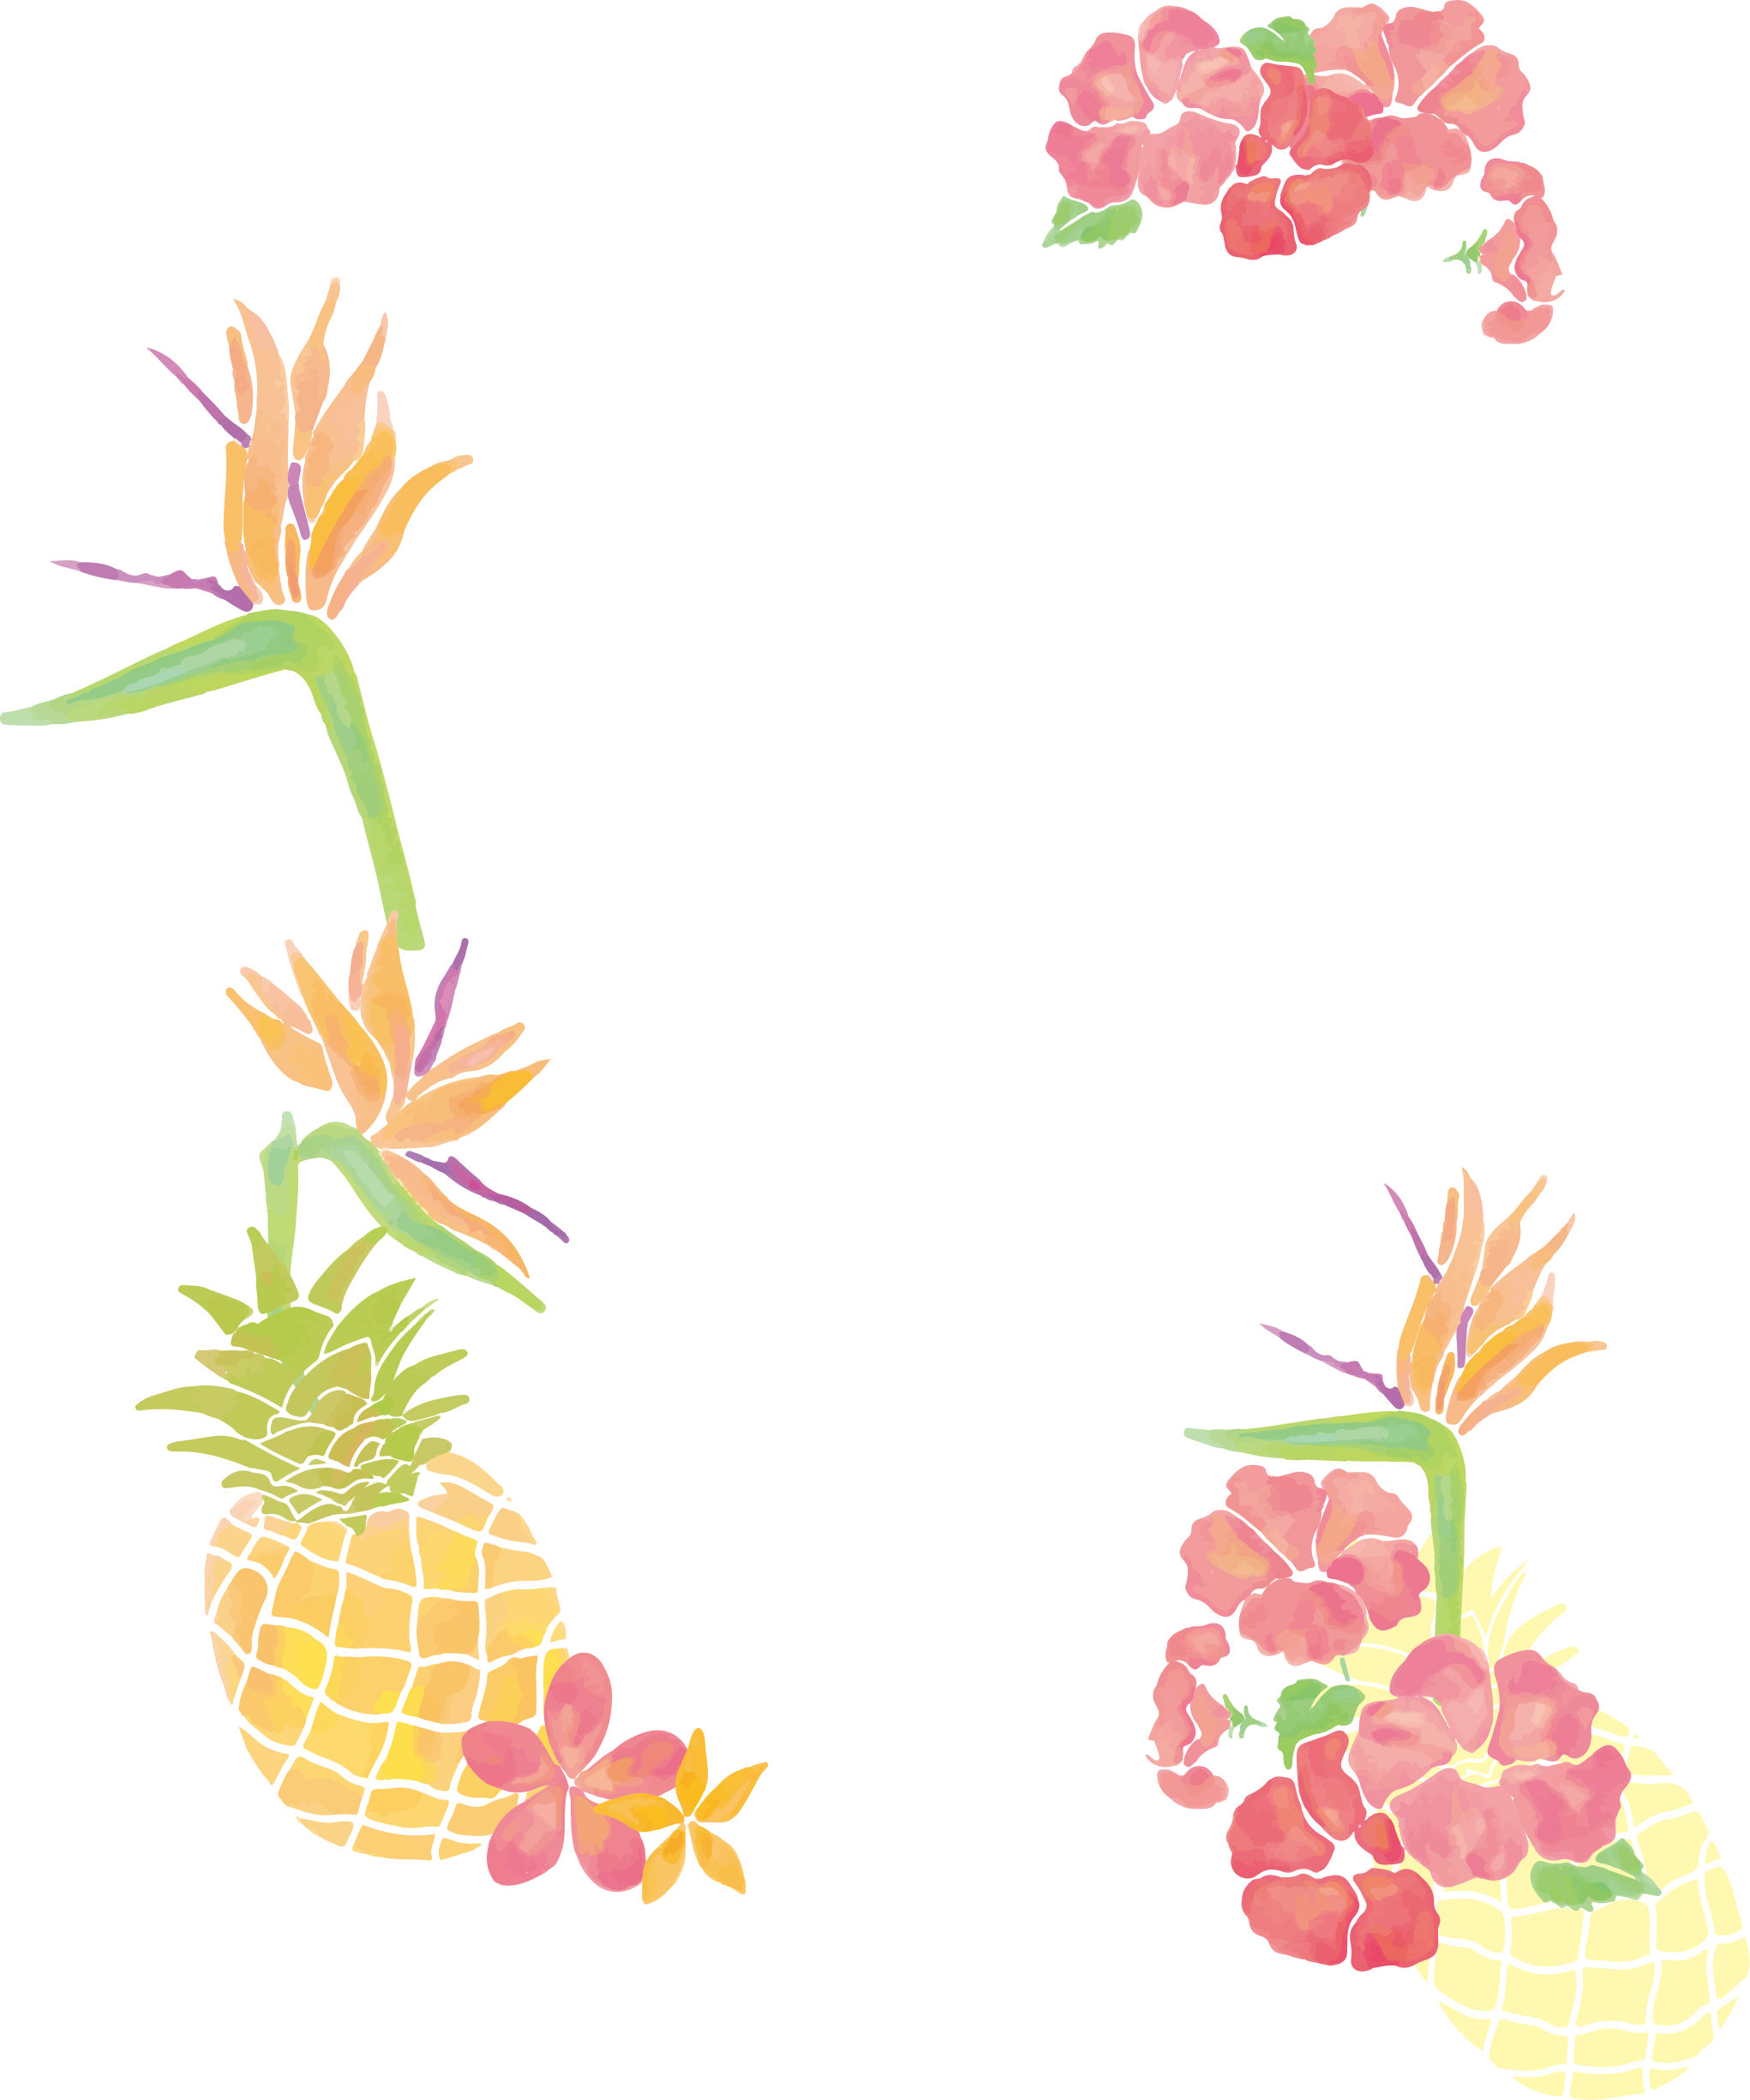 Pineapple clip art small. Fruits clipart borders